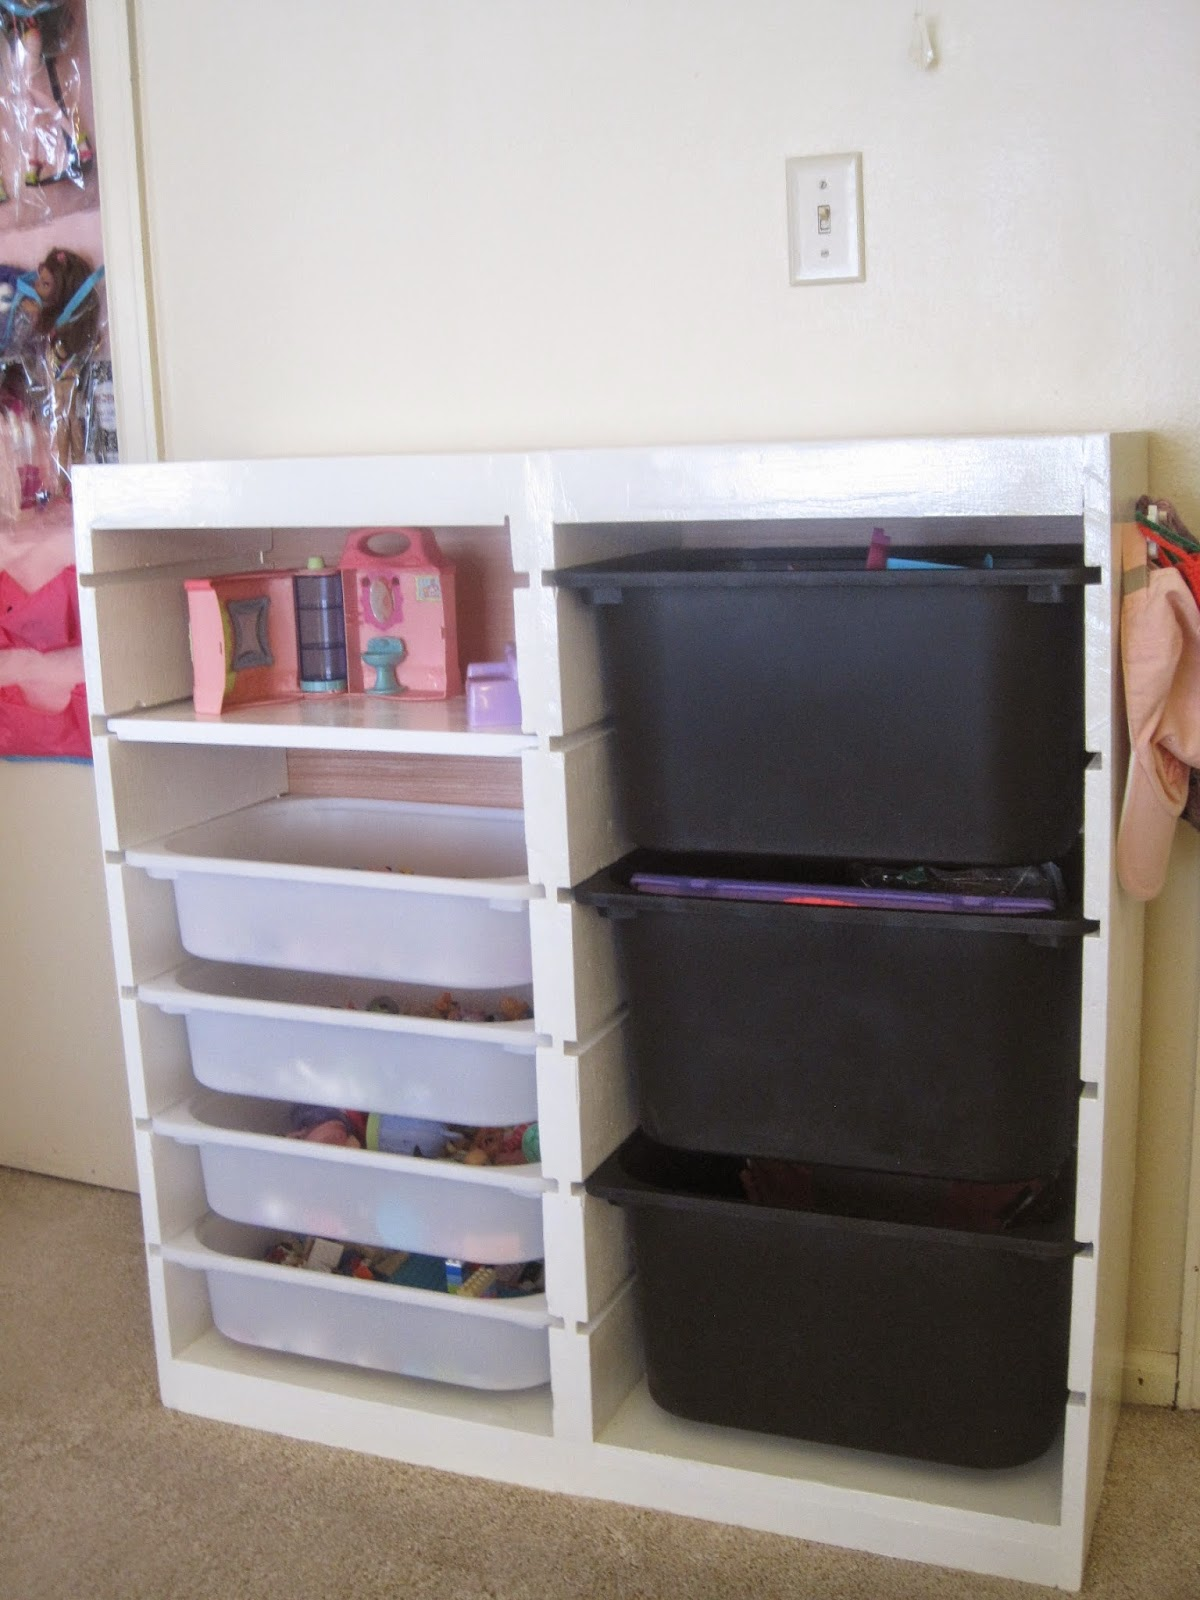 The Girlu0027s Storage Unit. She Requested One Slot Be Used For A Shelf Instead  Of A Bin. We Also Attached 2 Drawer Pulls To One Side To Be Used As Hooks.